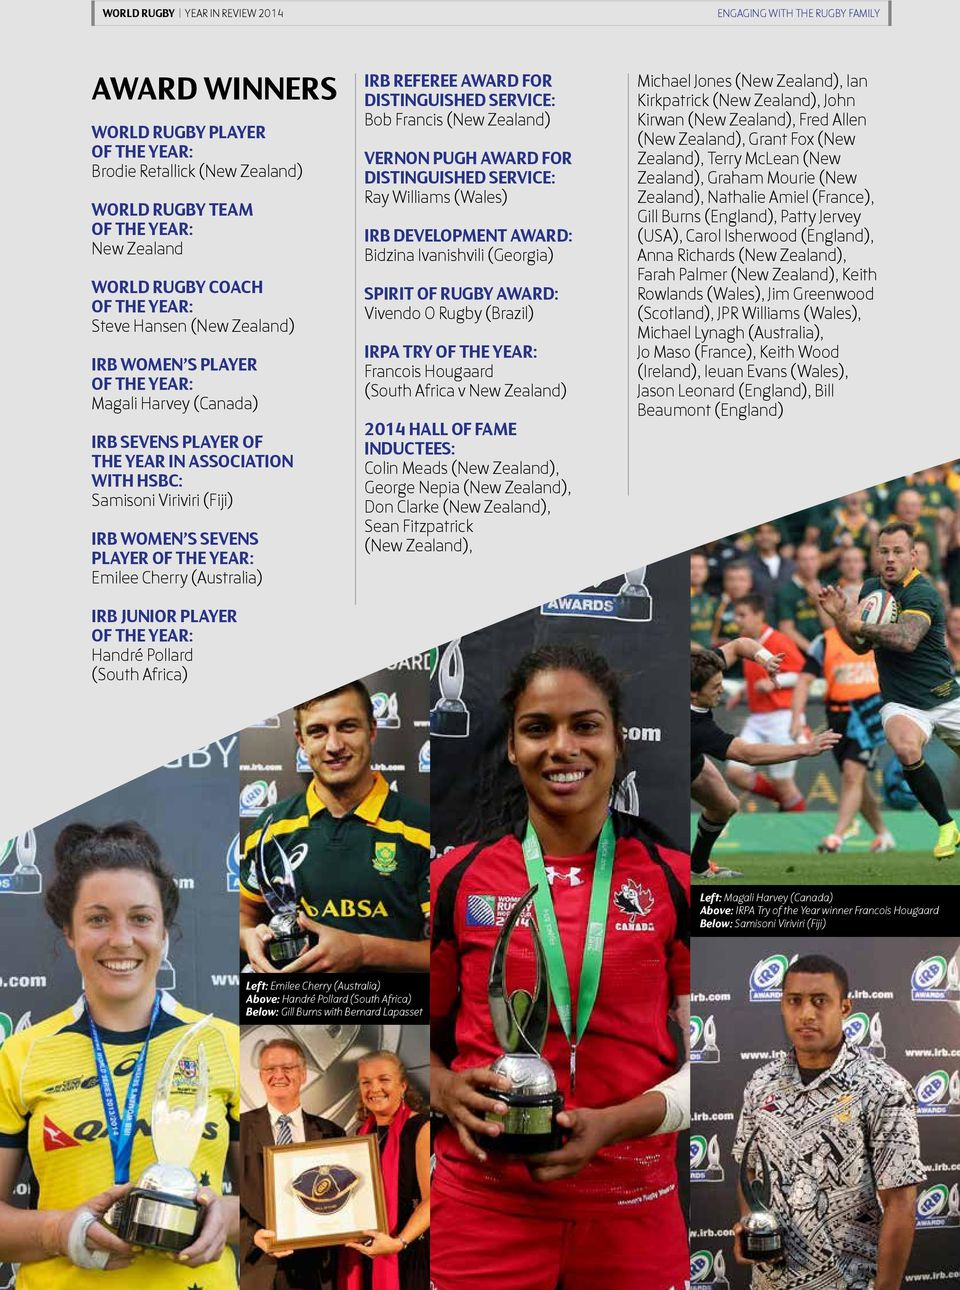 PLAYER OF THE YEAR: Emilee Cherry (Australia) IRB JUNIOR PLAYER OF THE YEAR: Handré Pollard (South Africa) IRB REFEREE AWARD FOR DISTINGUISHED SERVICE: Bob Francis (New Zealand) VERNON PUGH AWARD FOR